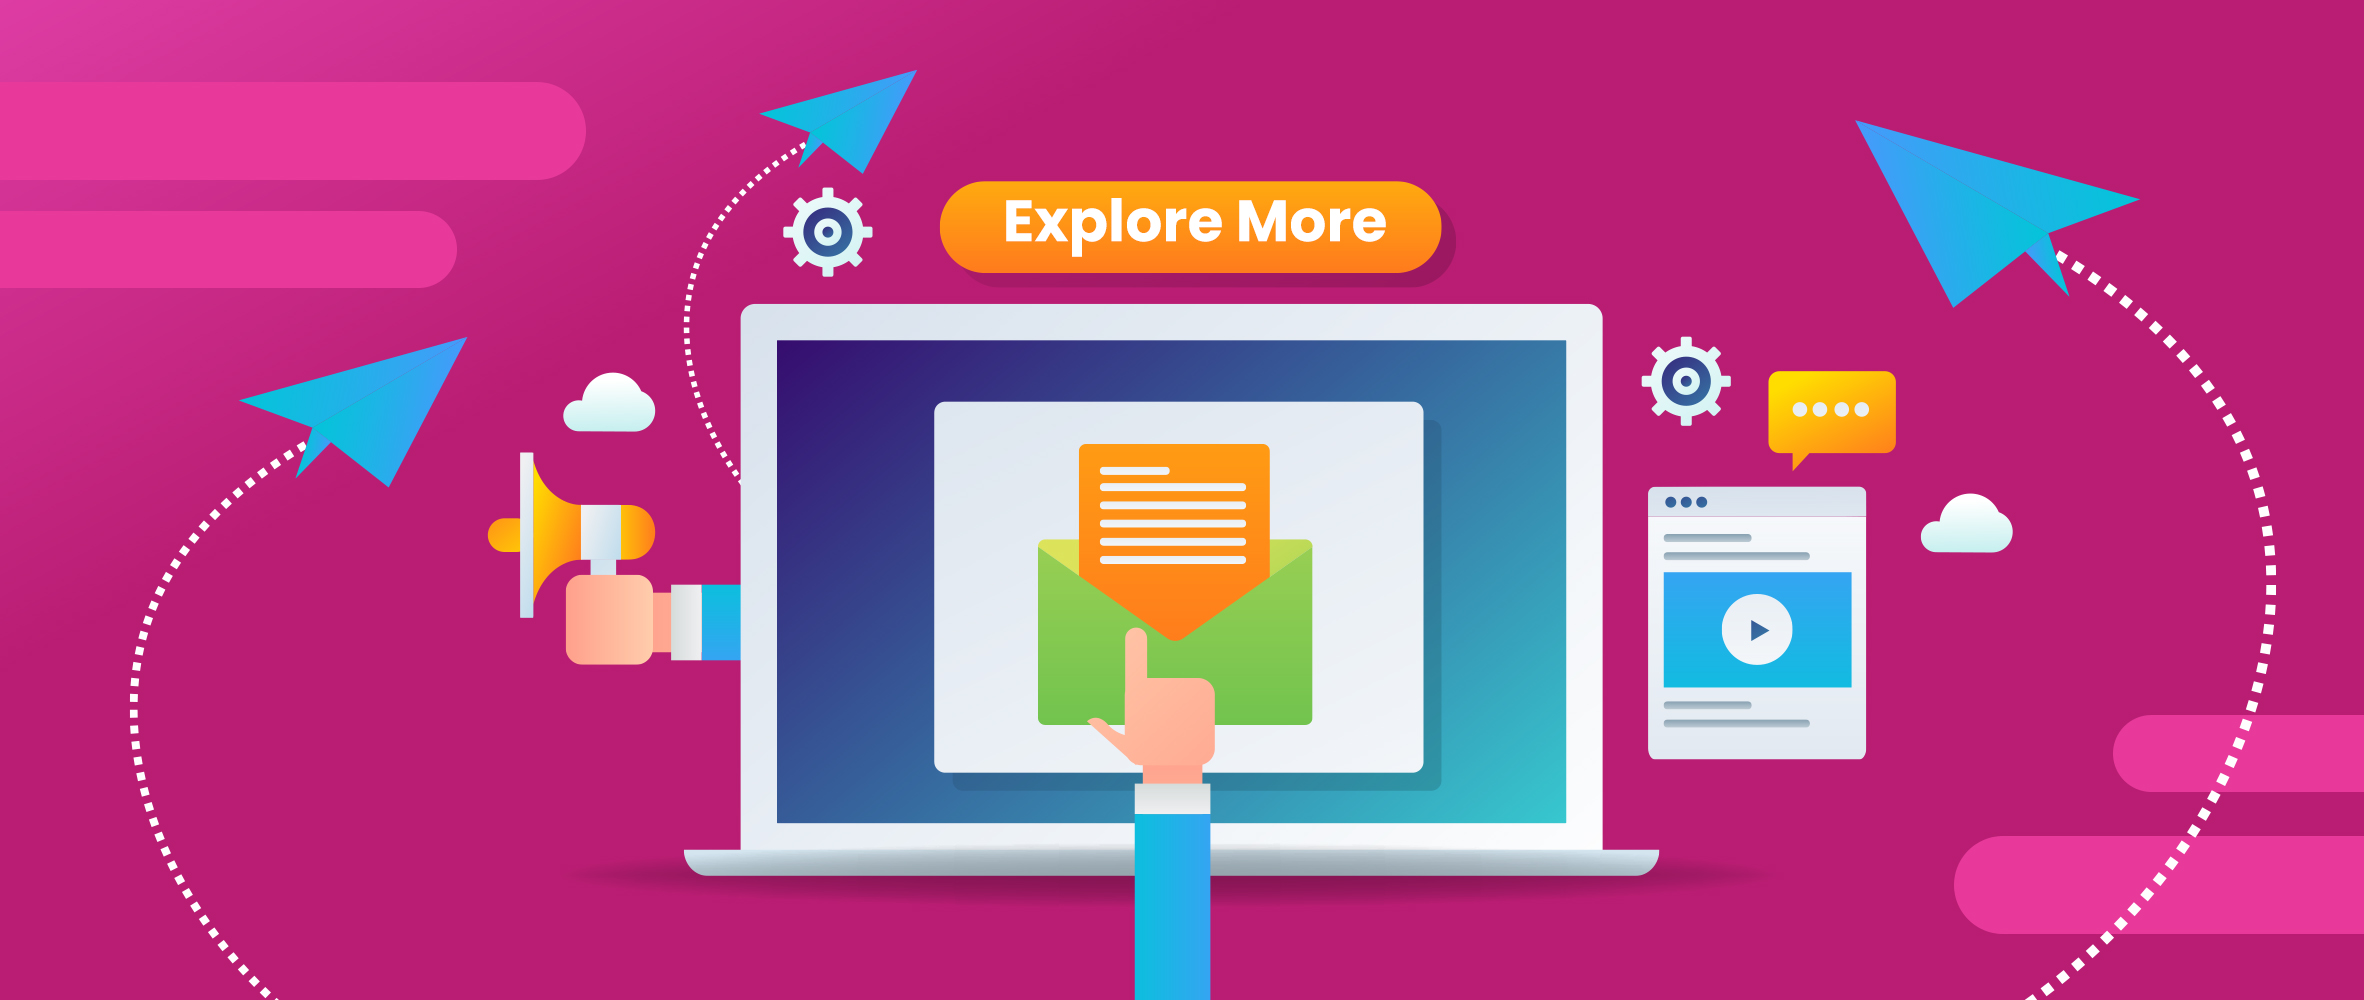 Tips to Improve Your Email Marketing Stats